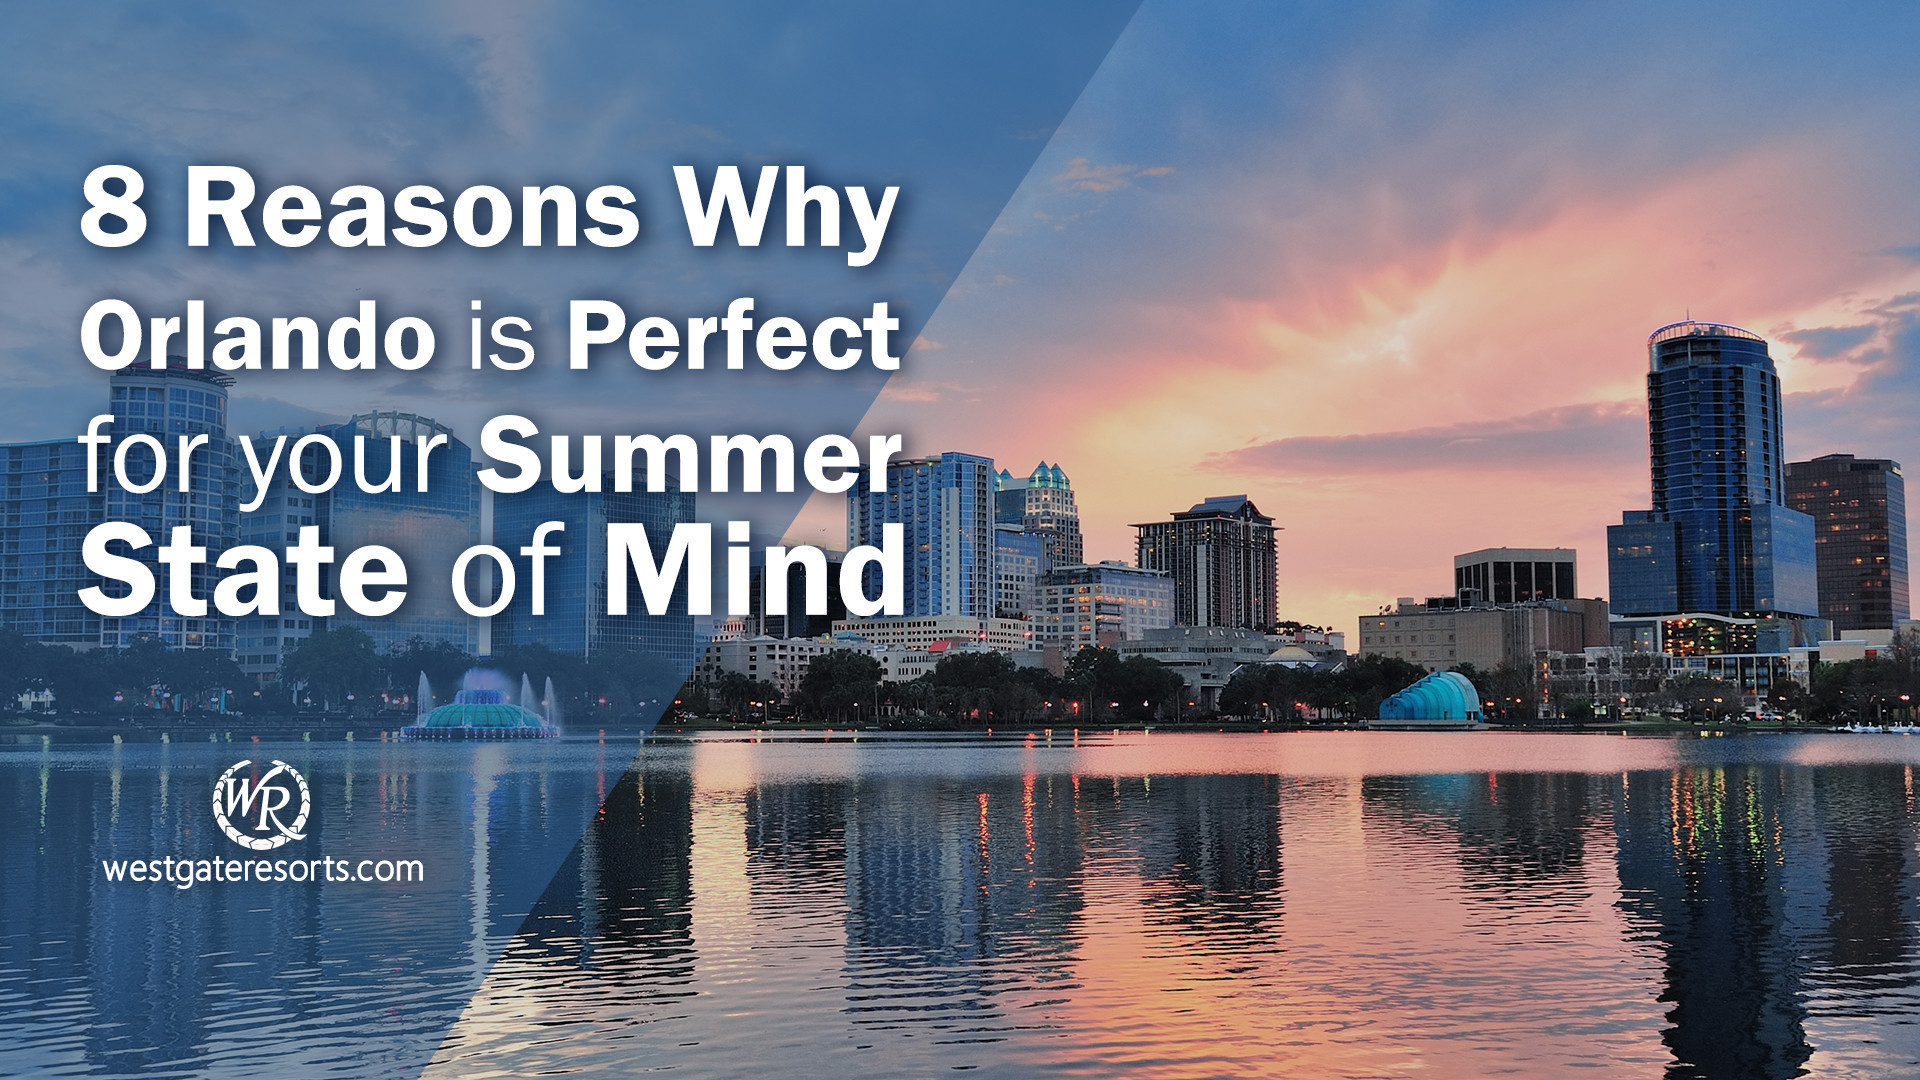 8 Reasons Why Orlando Is The Place To Visit For Your Summer State Of Mind! | Orlando In The Summer